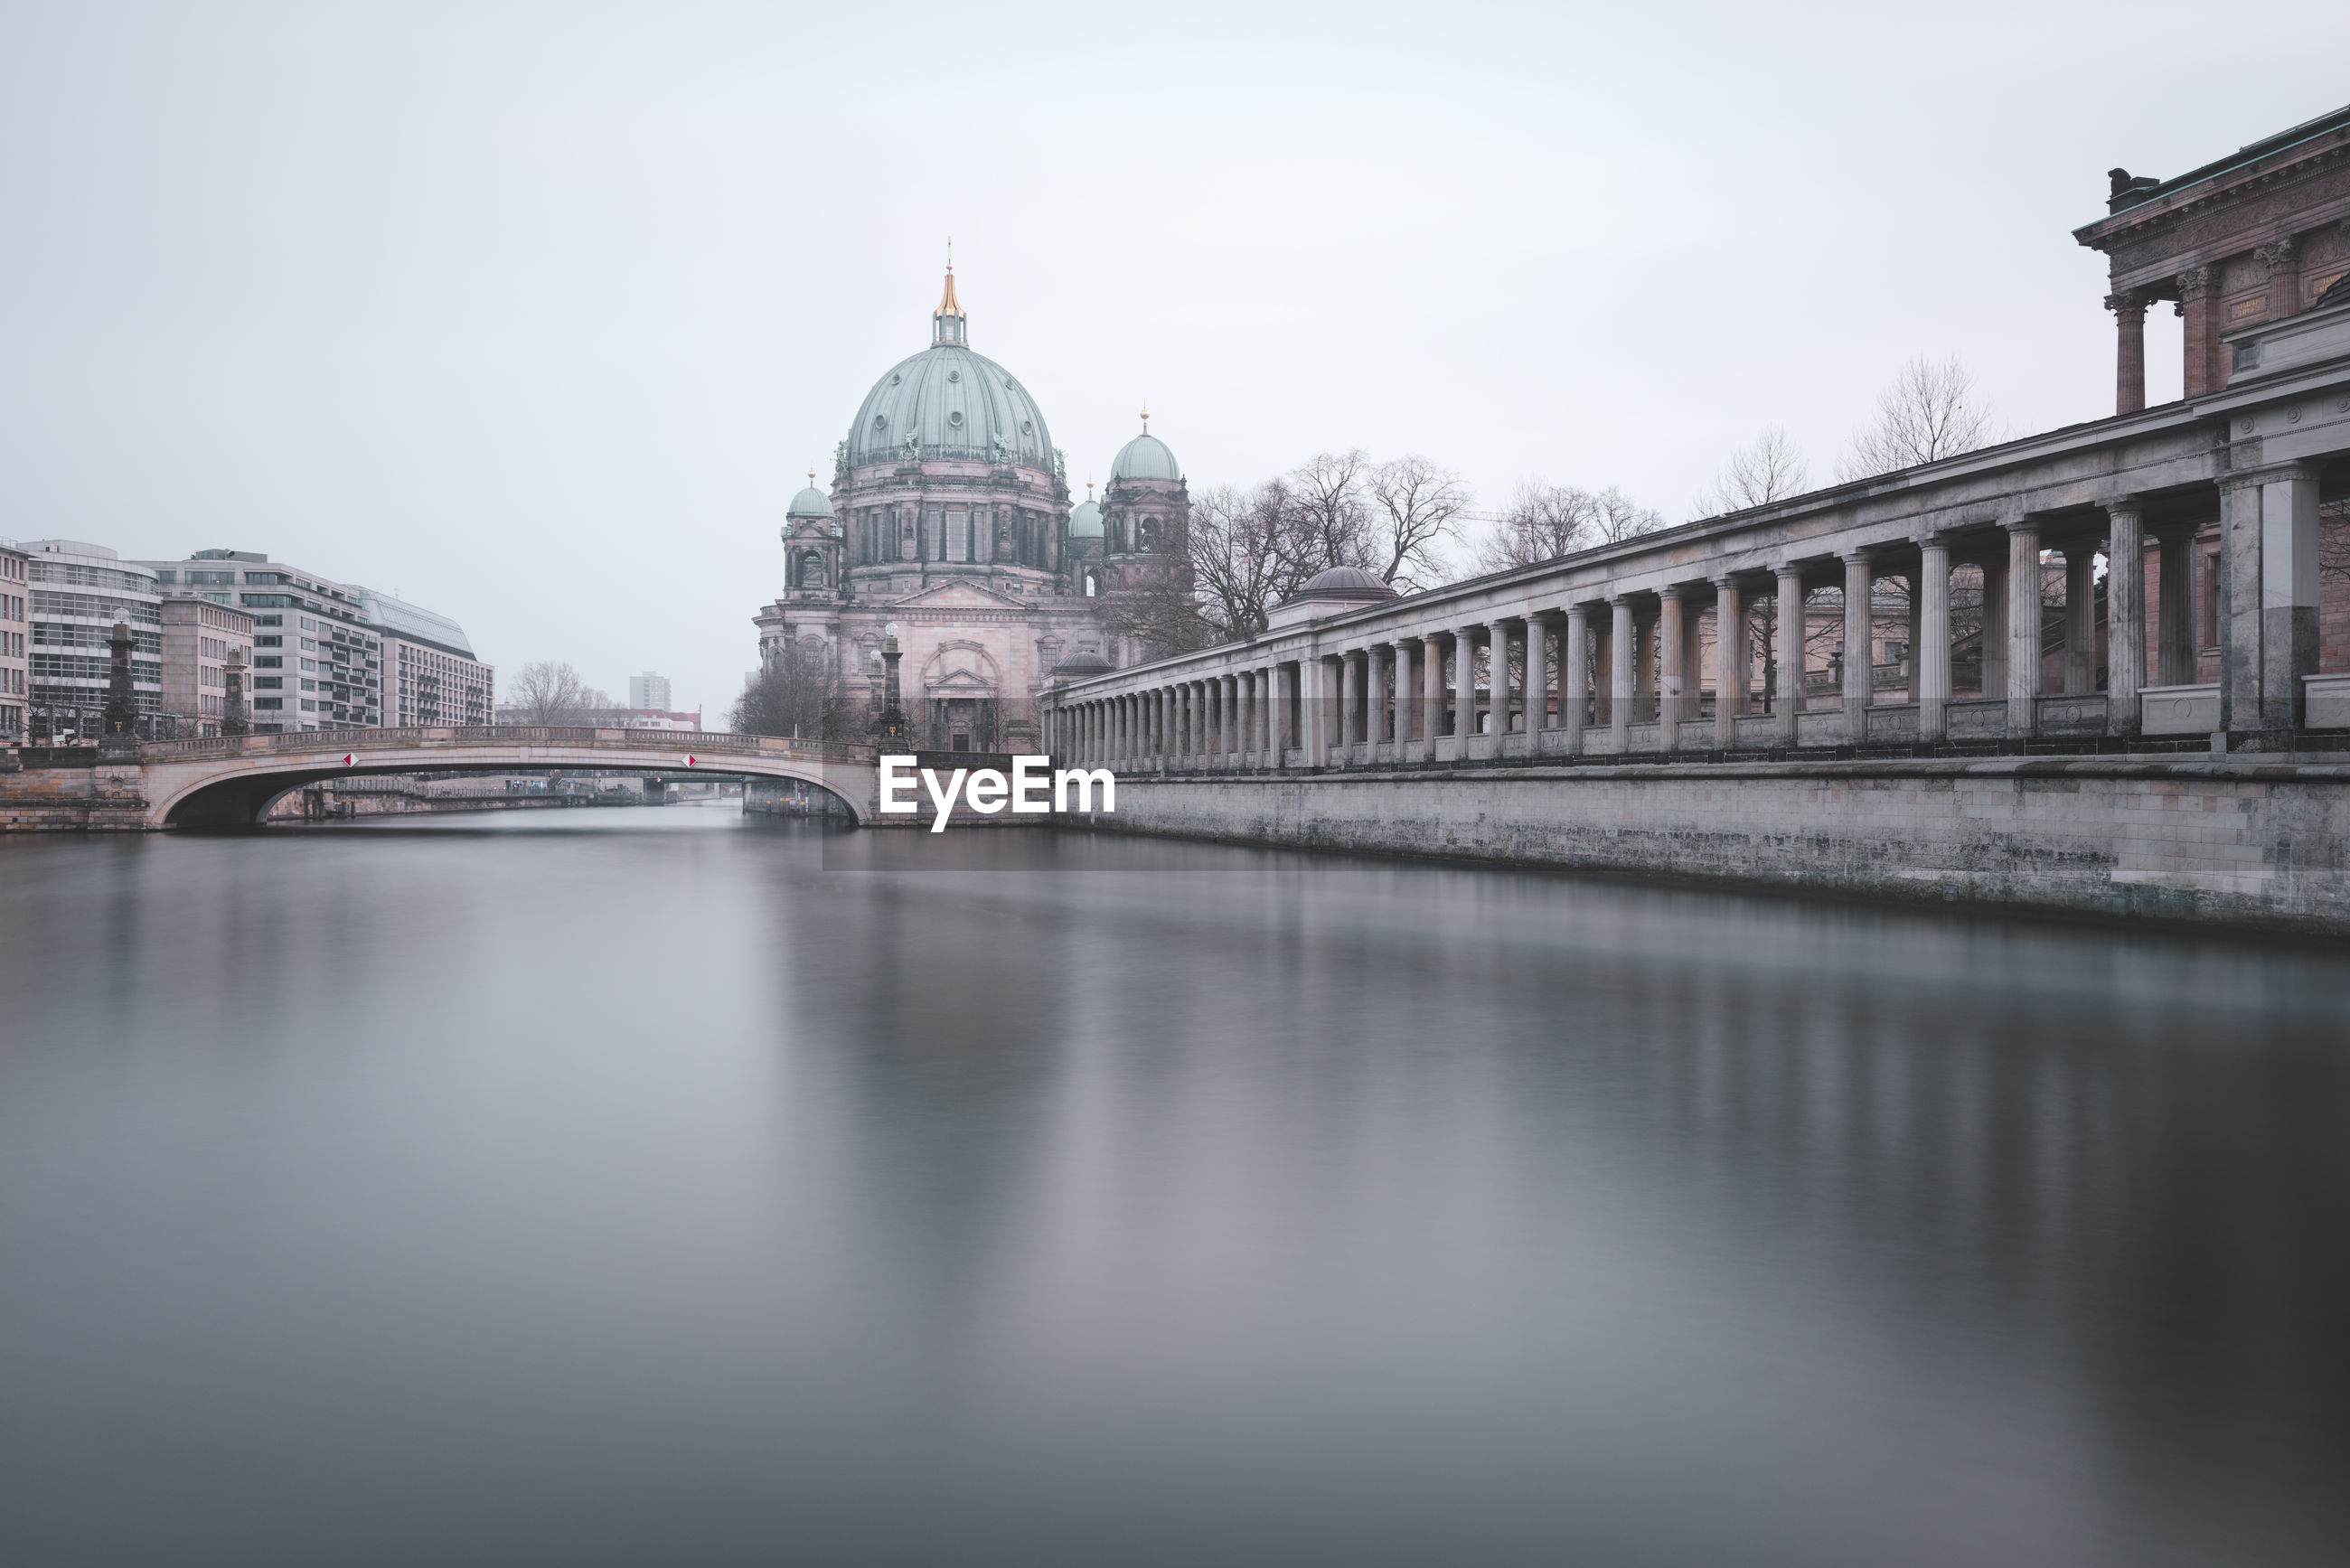 Bridge over spree river by berlin cathedral against sky in city